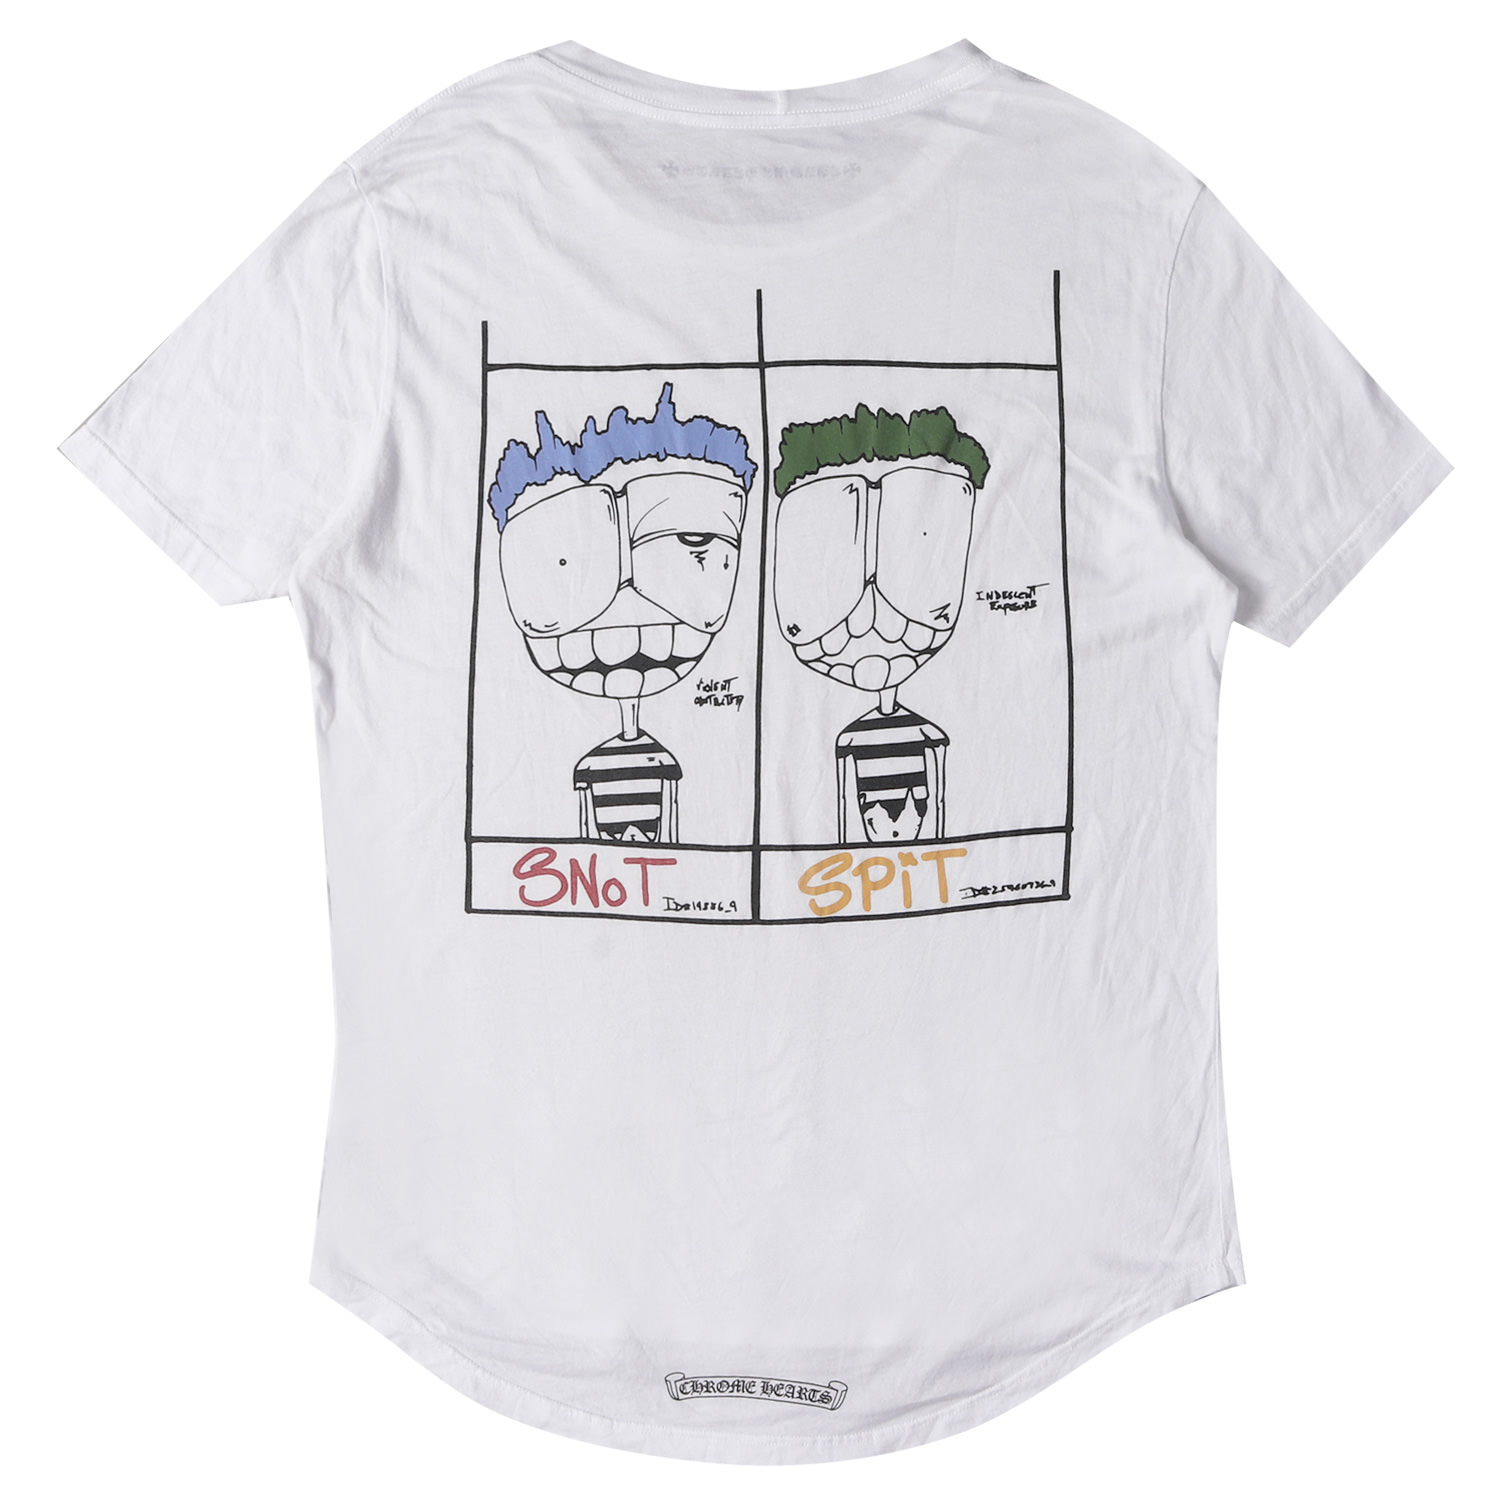 Design By Humans Incredible Pocket Circus Boys Youth Graphic T Shirt